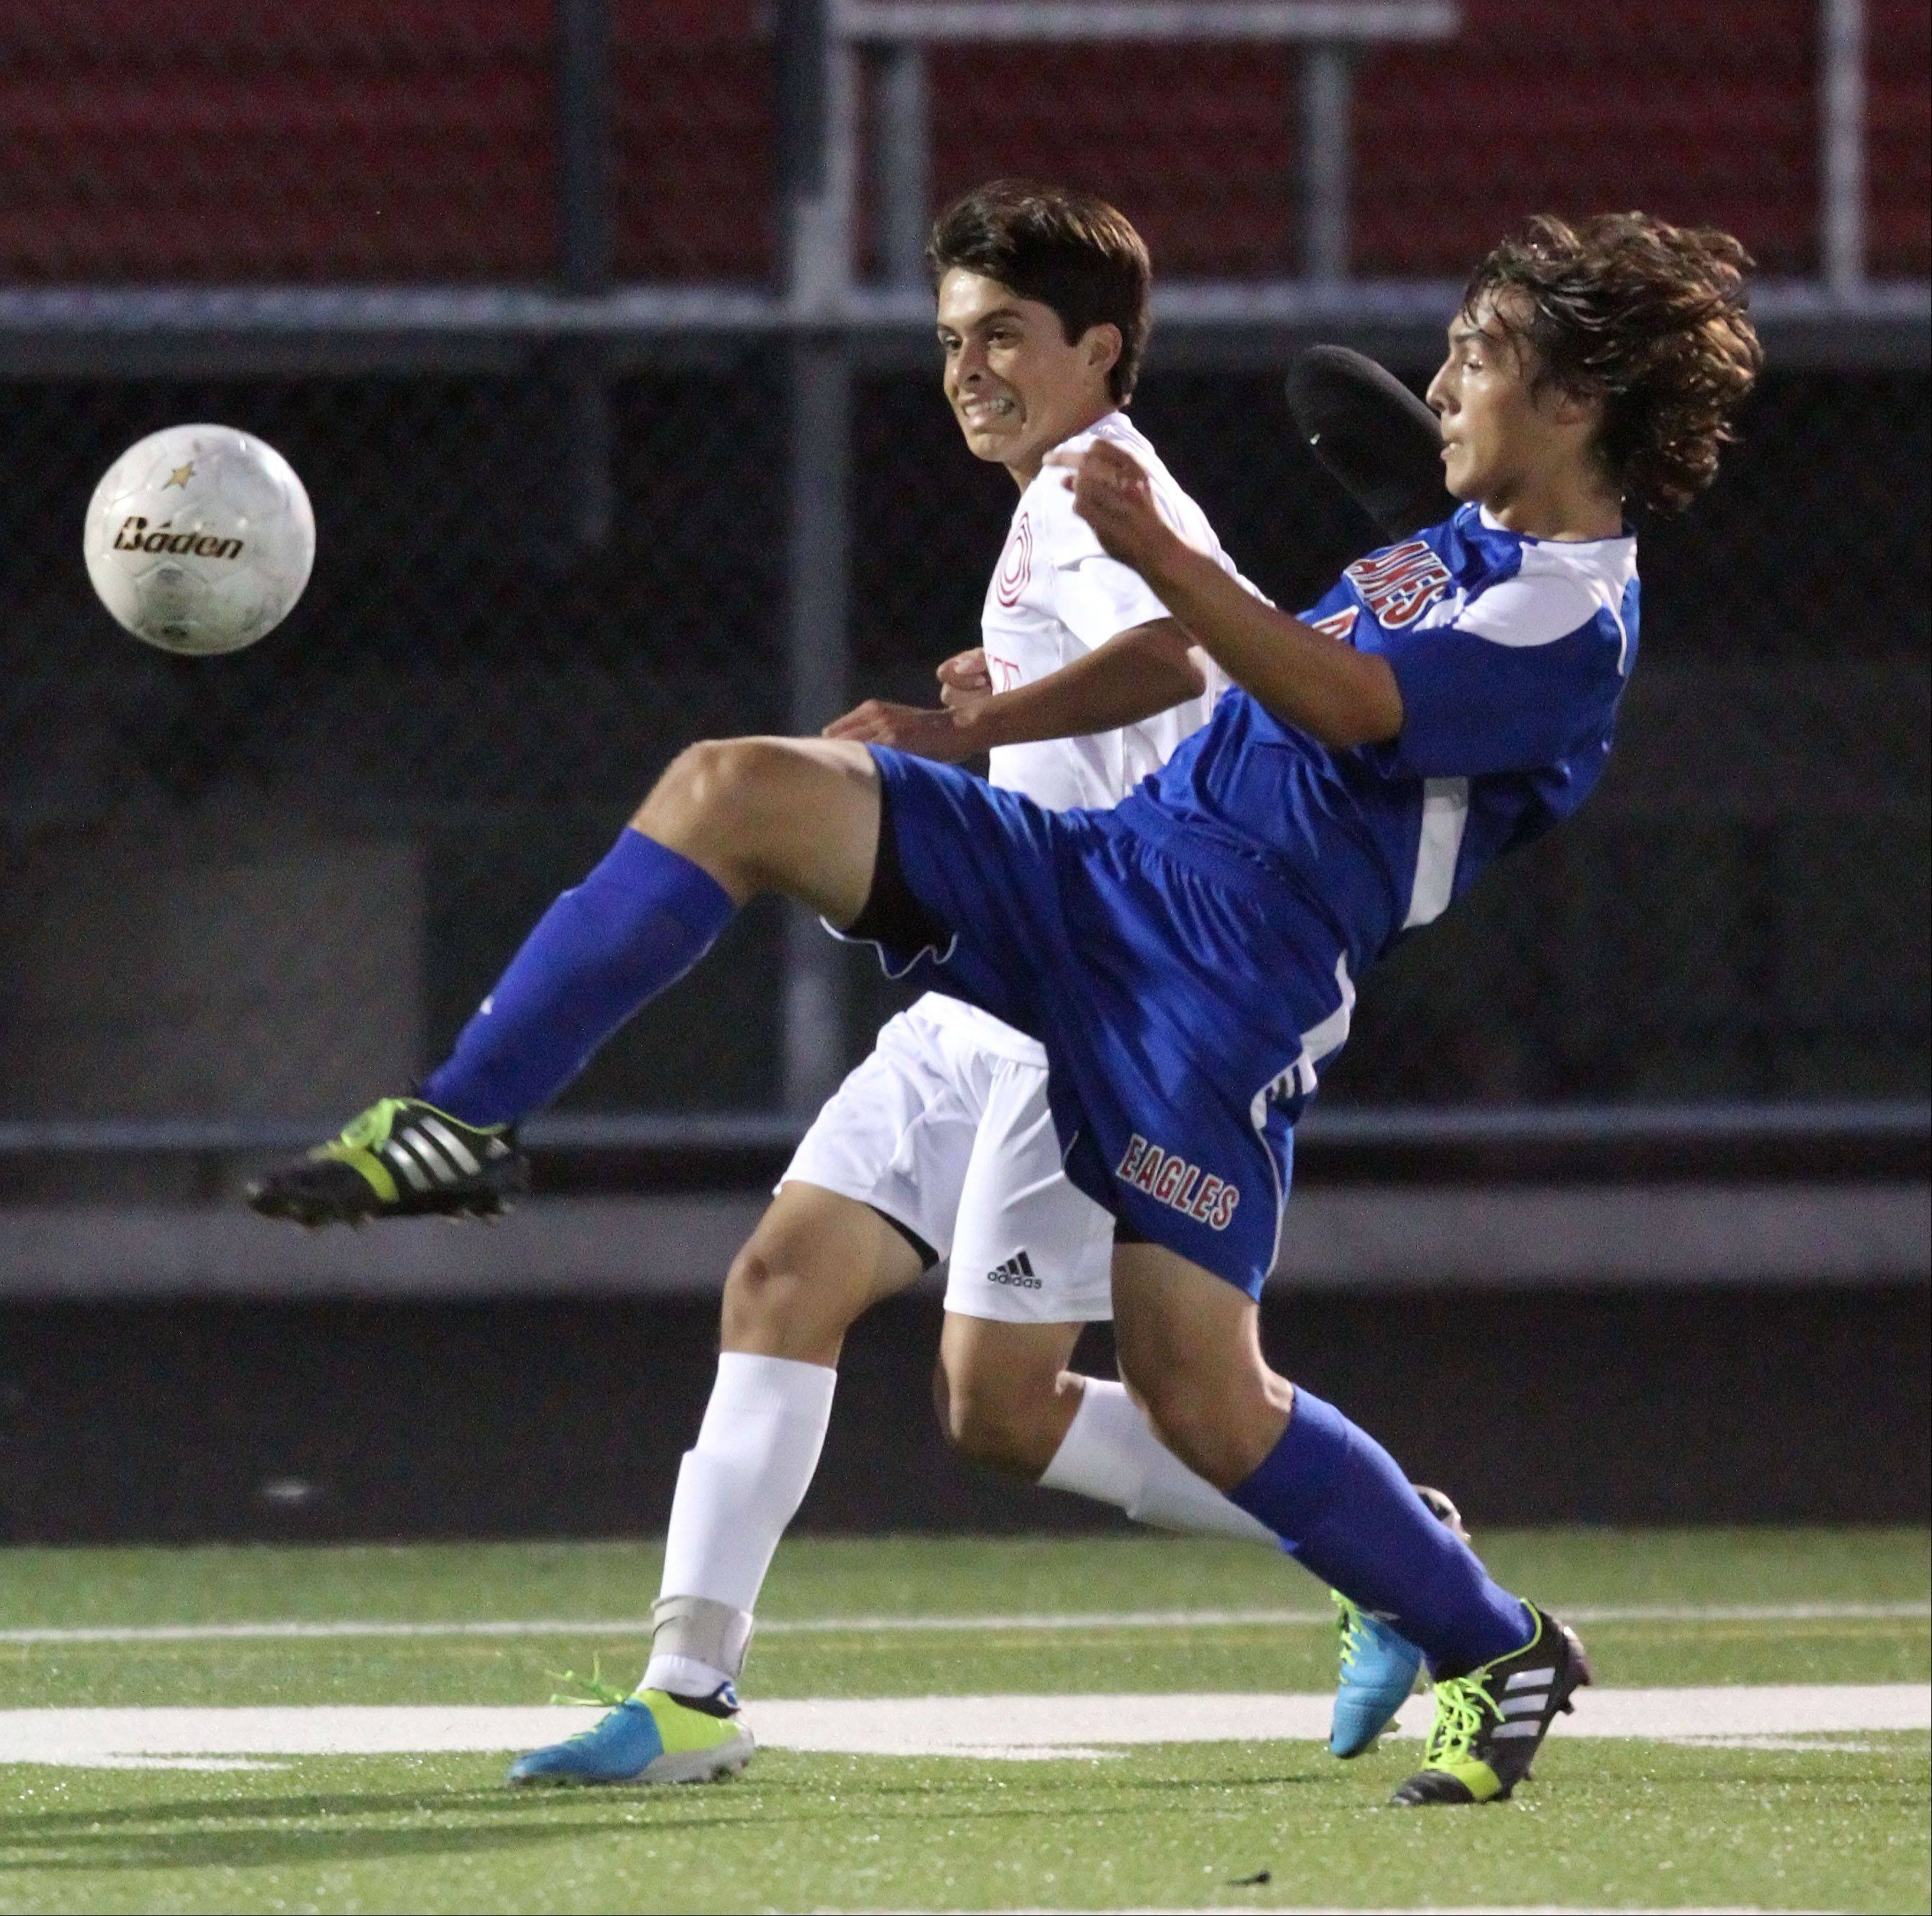 Lakes' Jon Borzick, right, and Grant's Kevin Peralta battle for the ball Monday night at Grant.